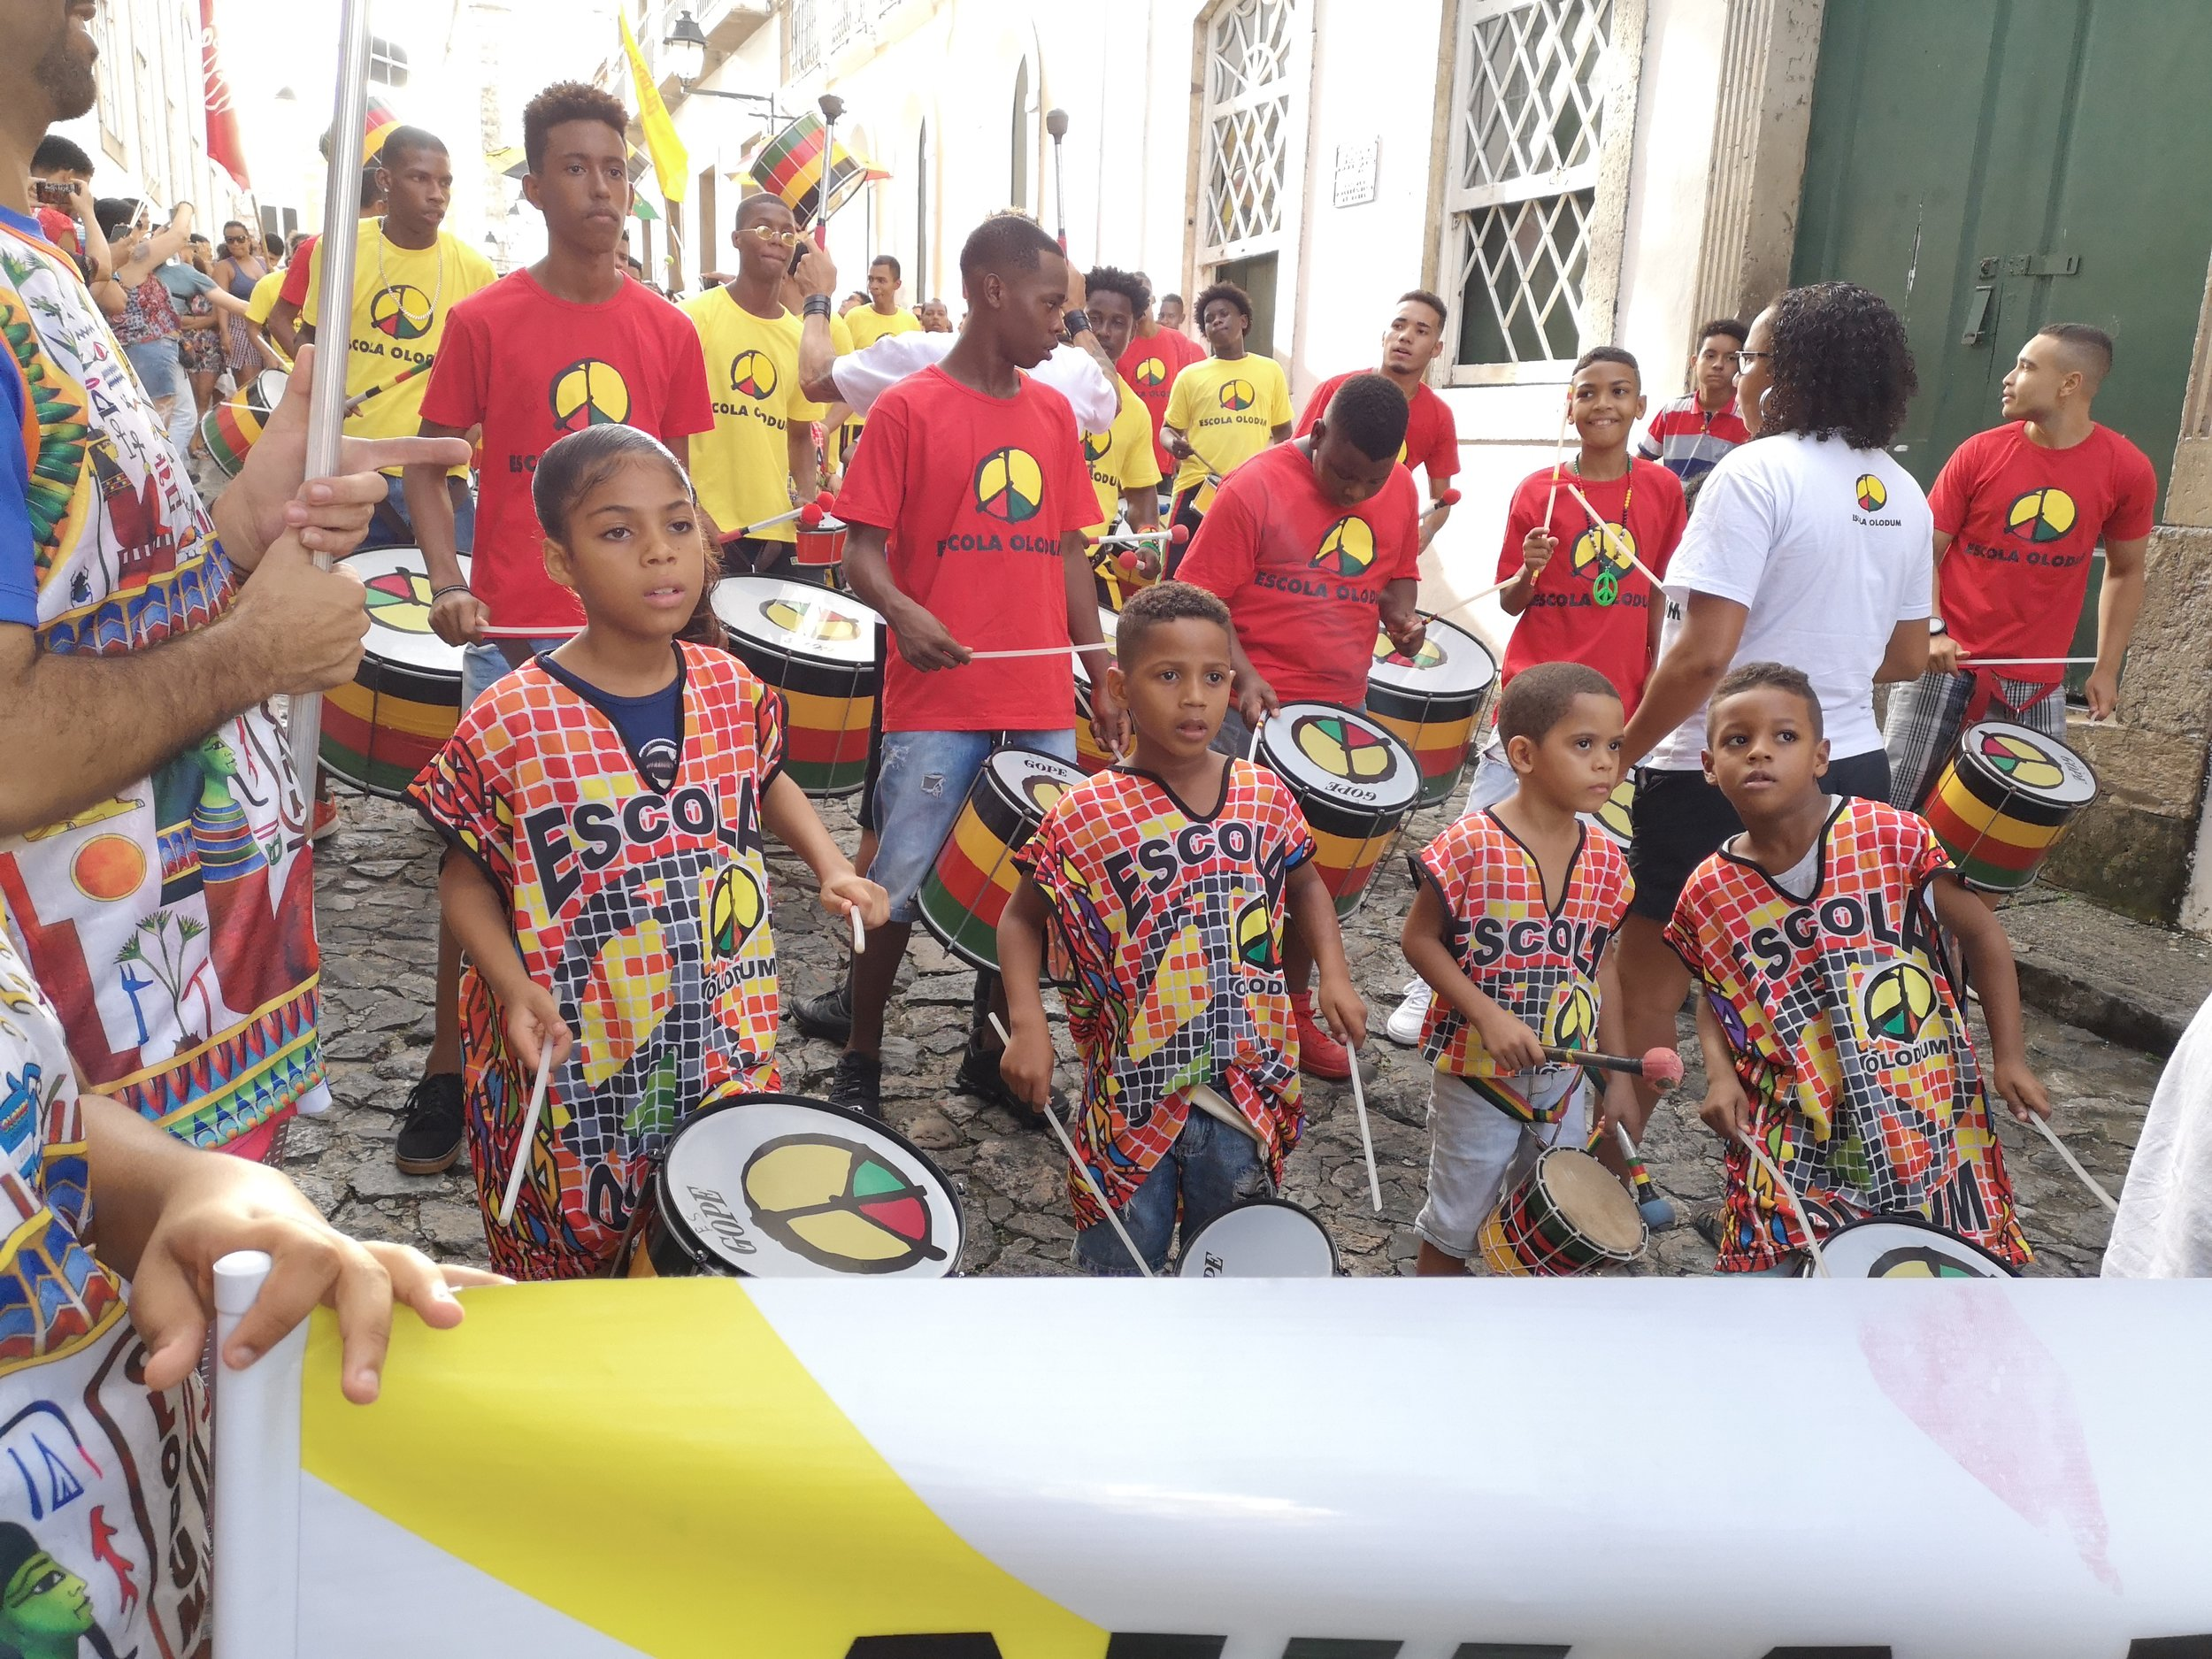 Marching through the small alleys of Pelourinho with some of the students of  Escola Olodum .